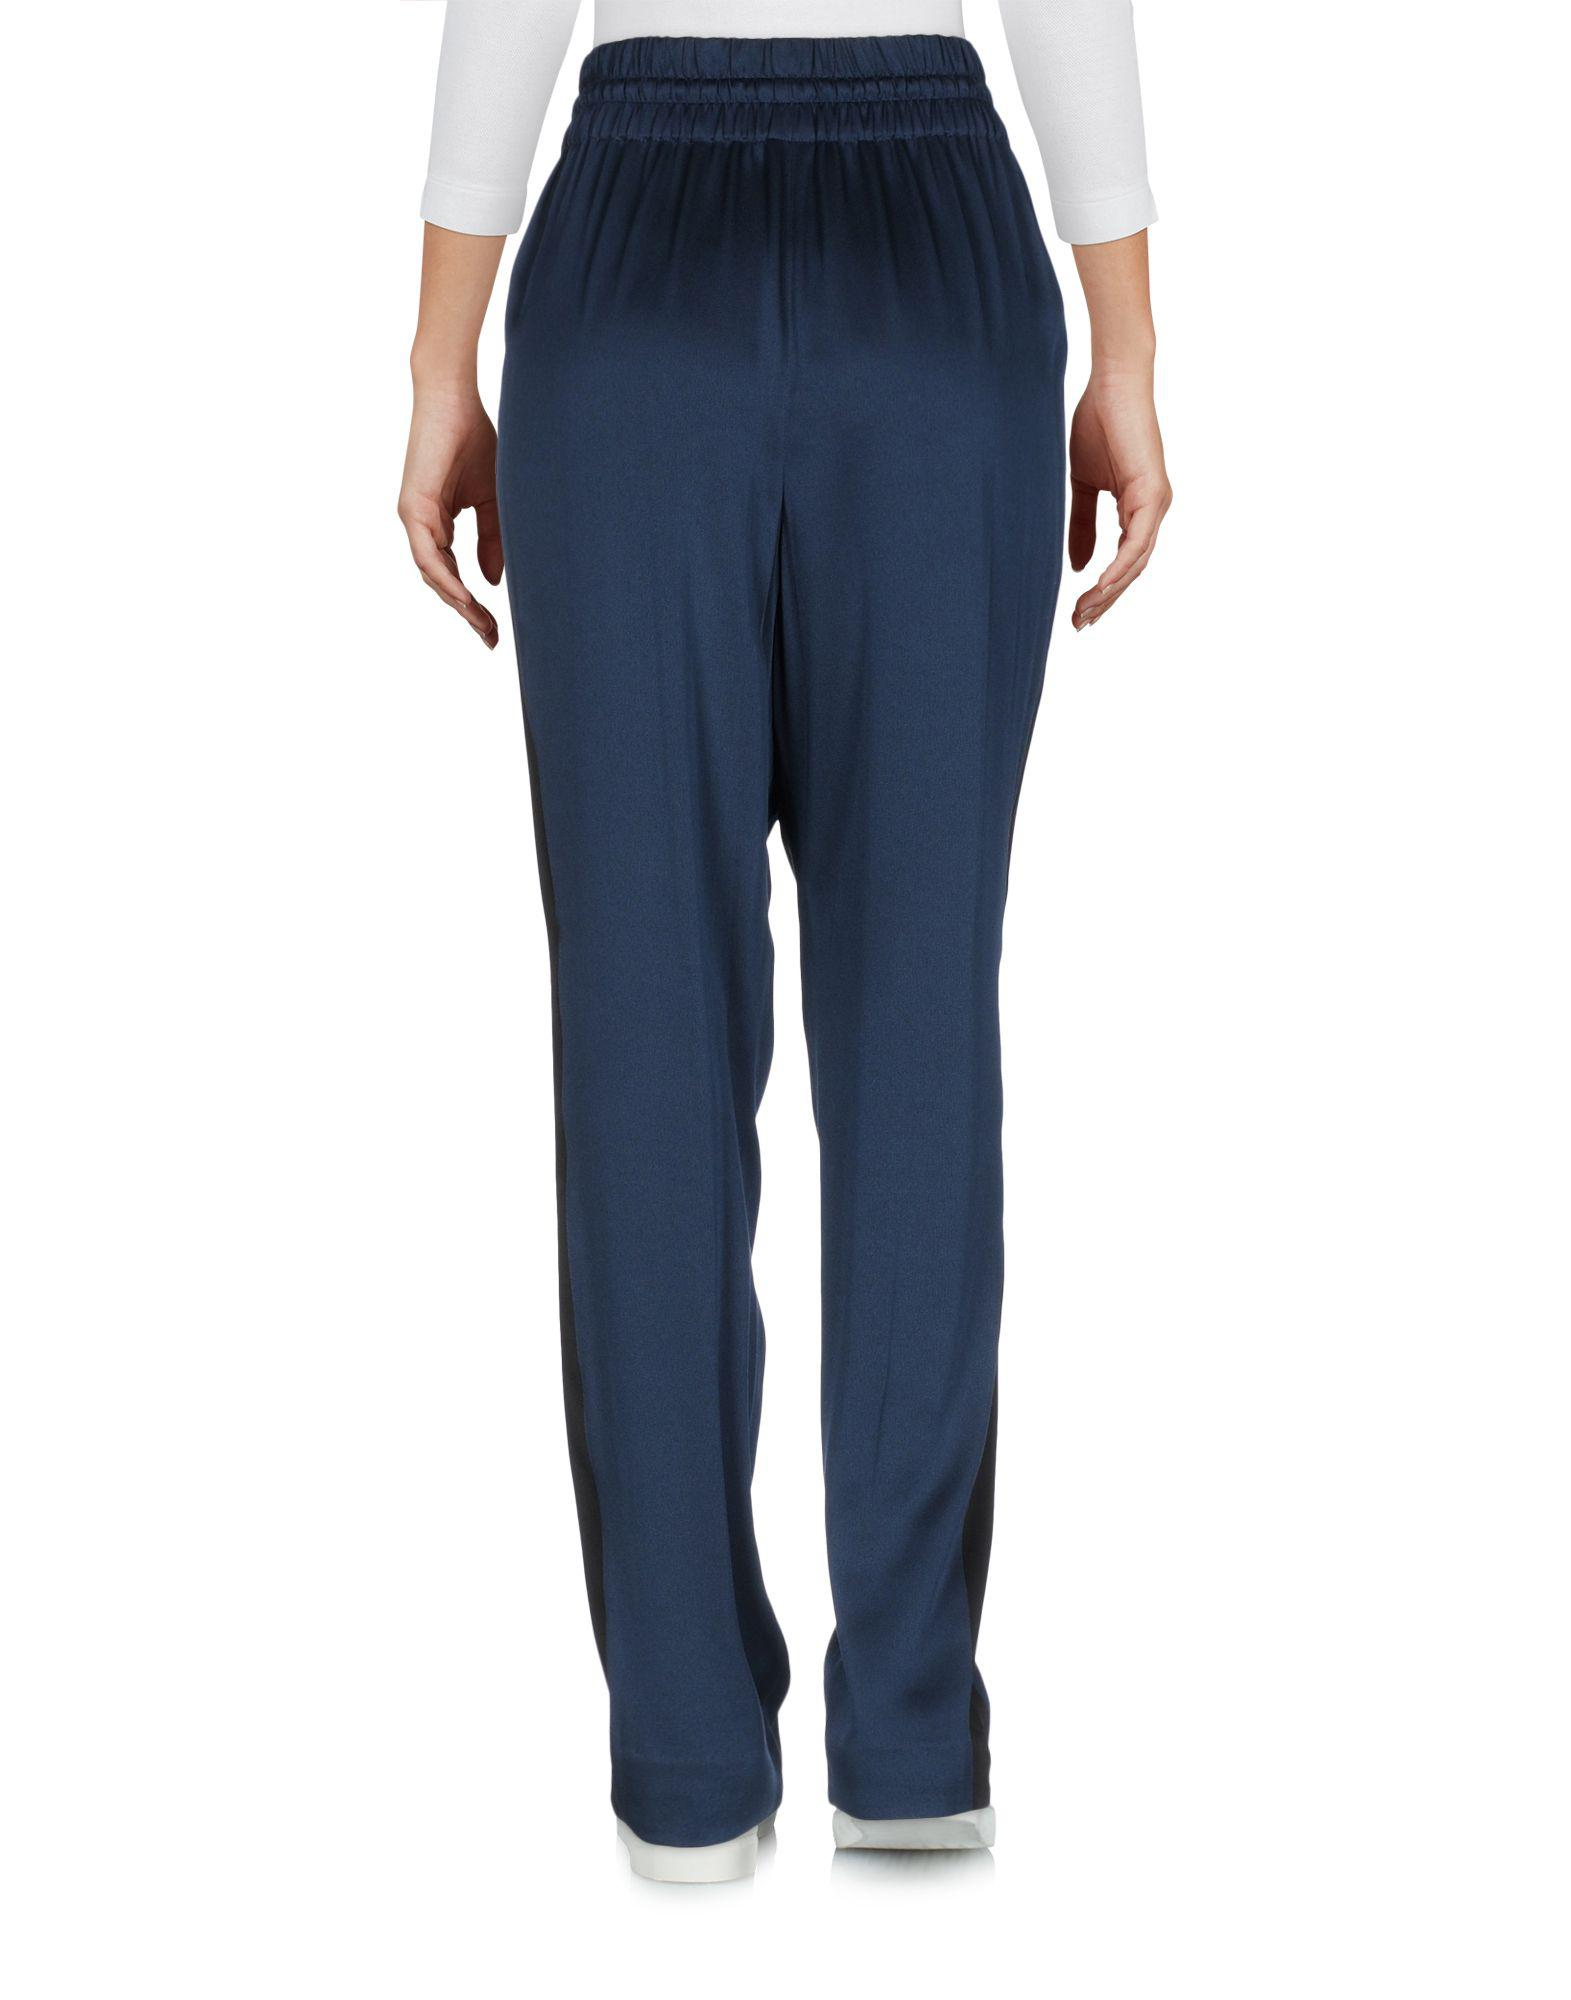 Low Cost Collections TROUSERS - Casual trousers Jason Wu Official Online Offer 2018 New Sale Online jtEW64G